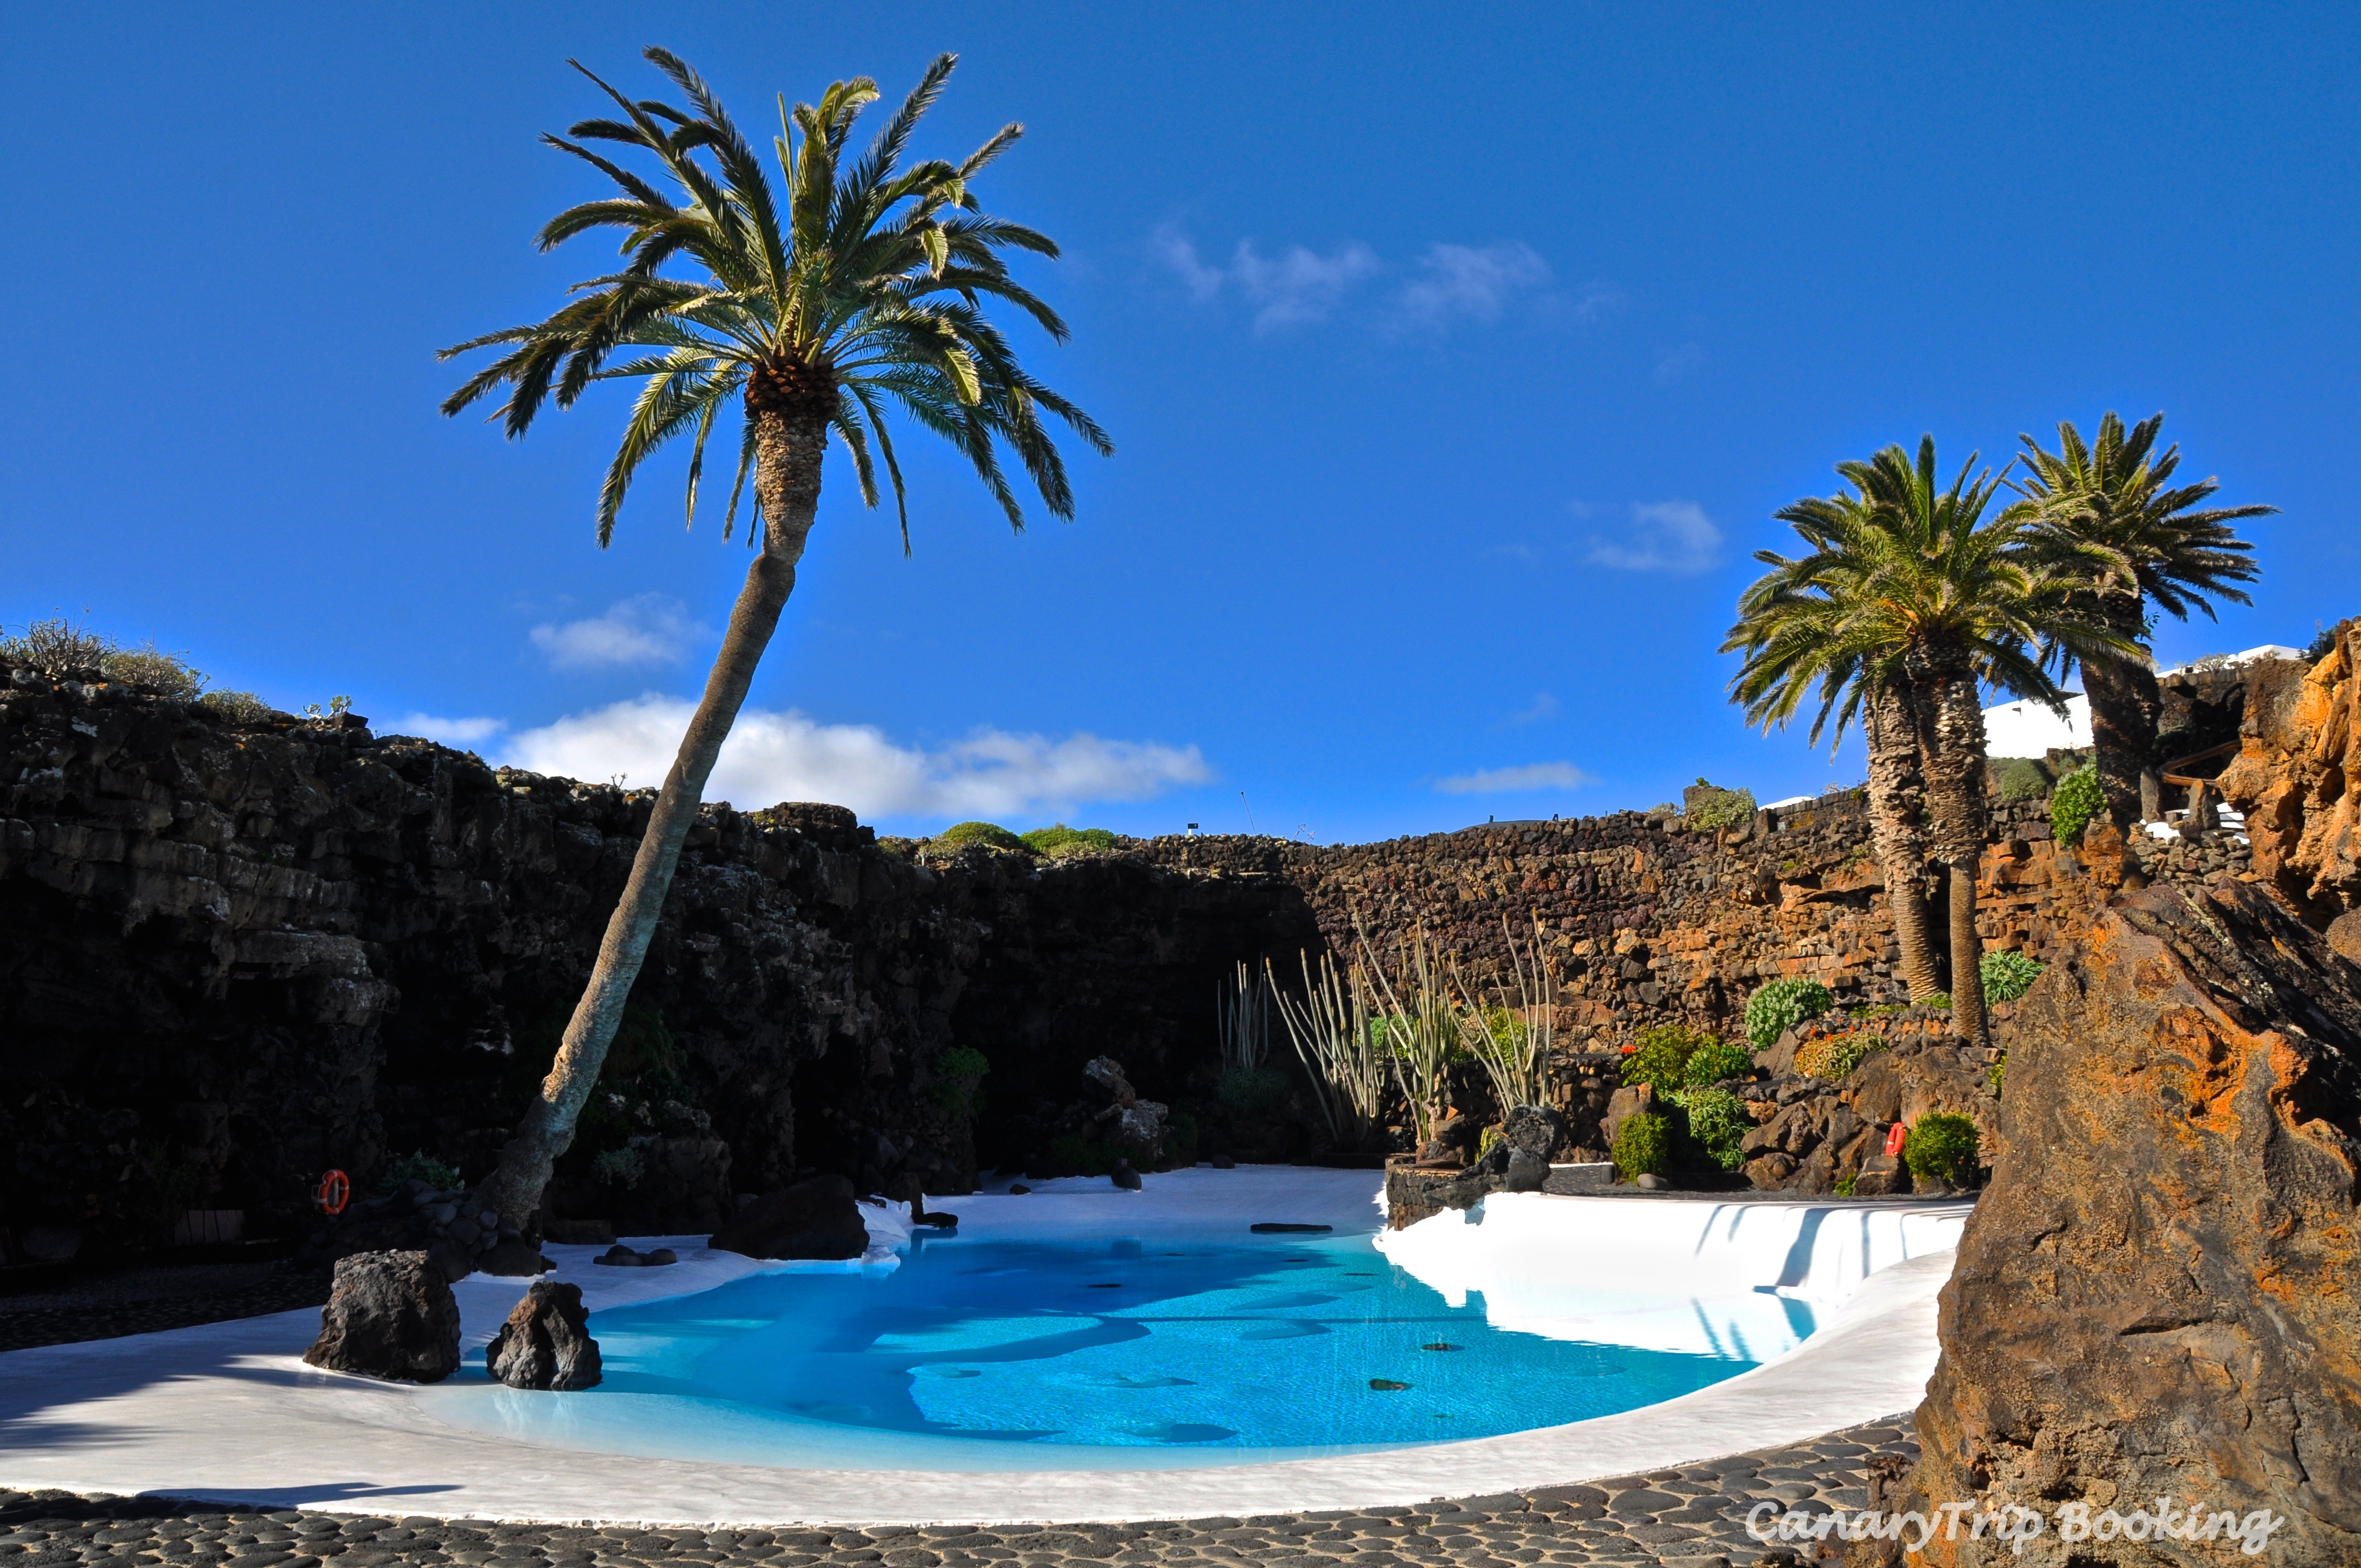 piscina-jameos-del-agua-lanzarote-canary-trip-booking